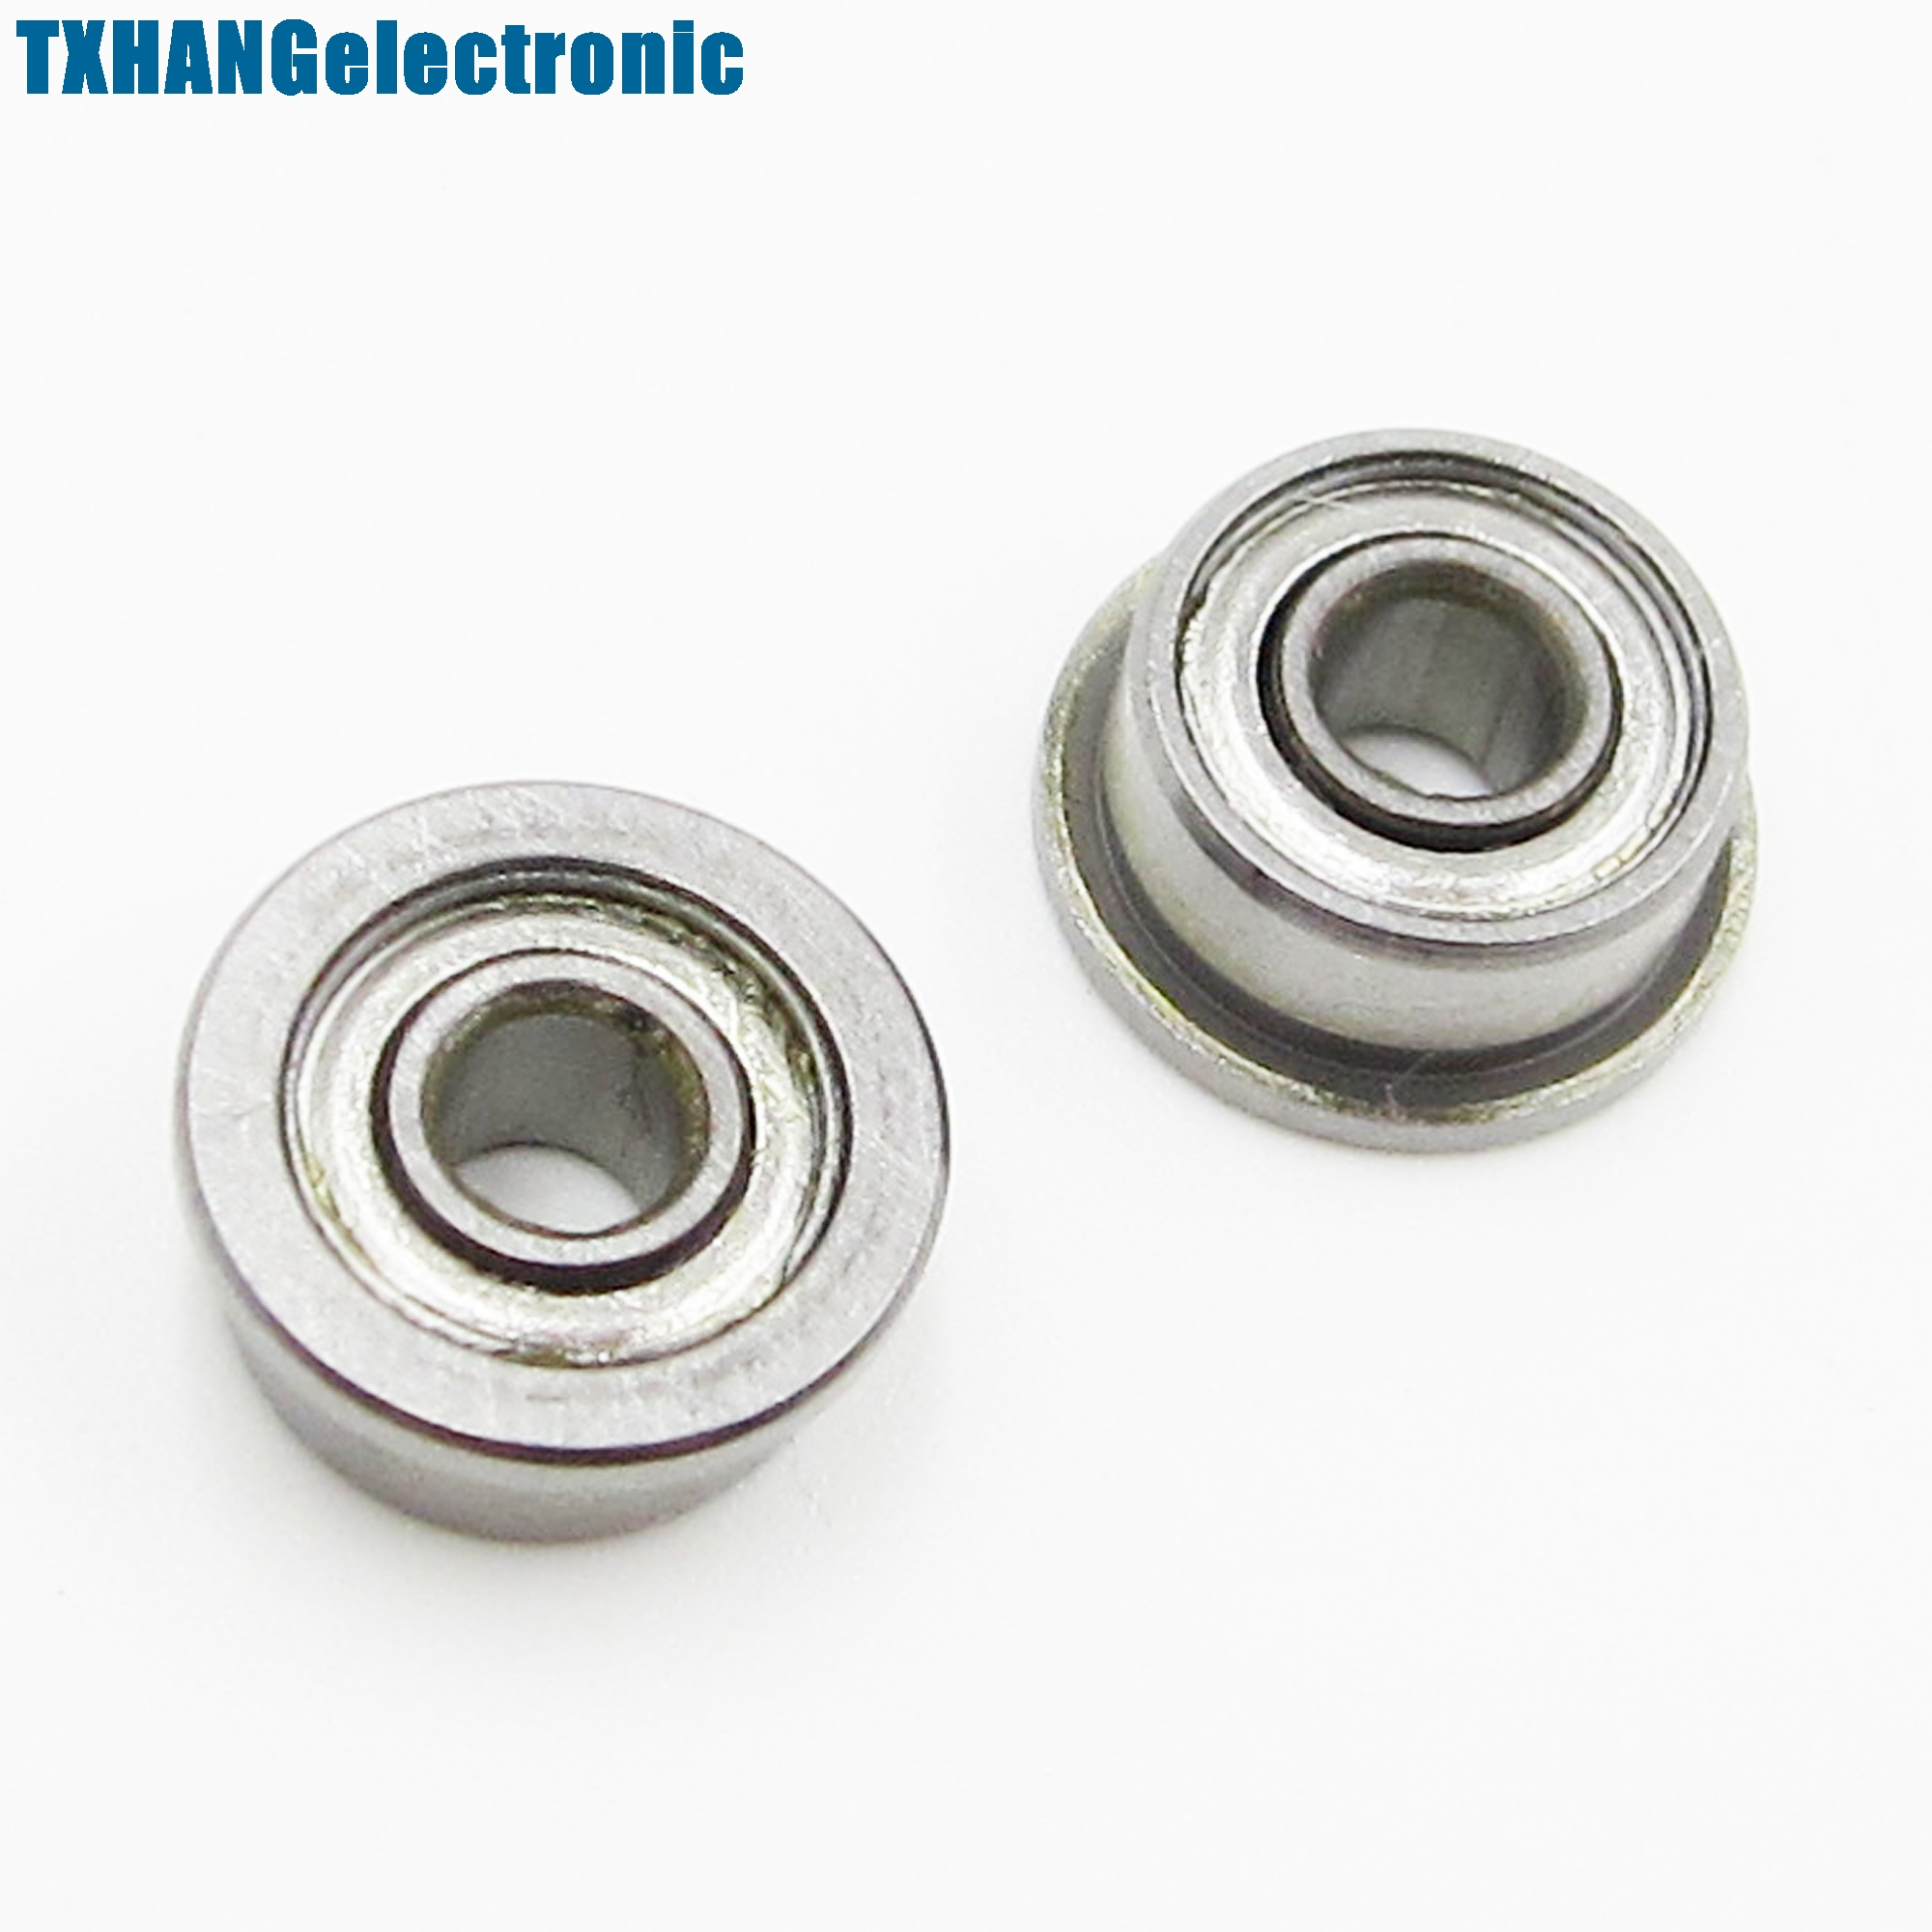 Search For Flights 10pcs F693zz 3*8*4mm Miniature Deep Groove Ball Flanged Cup Bearings 3x8x4mm Online Discount Integrated Circuits Electronic Components & Supplies